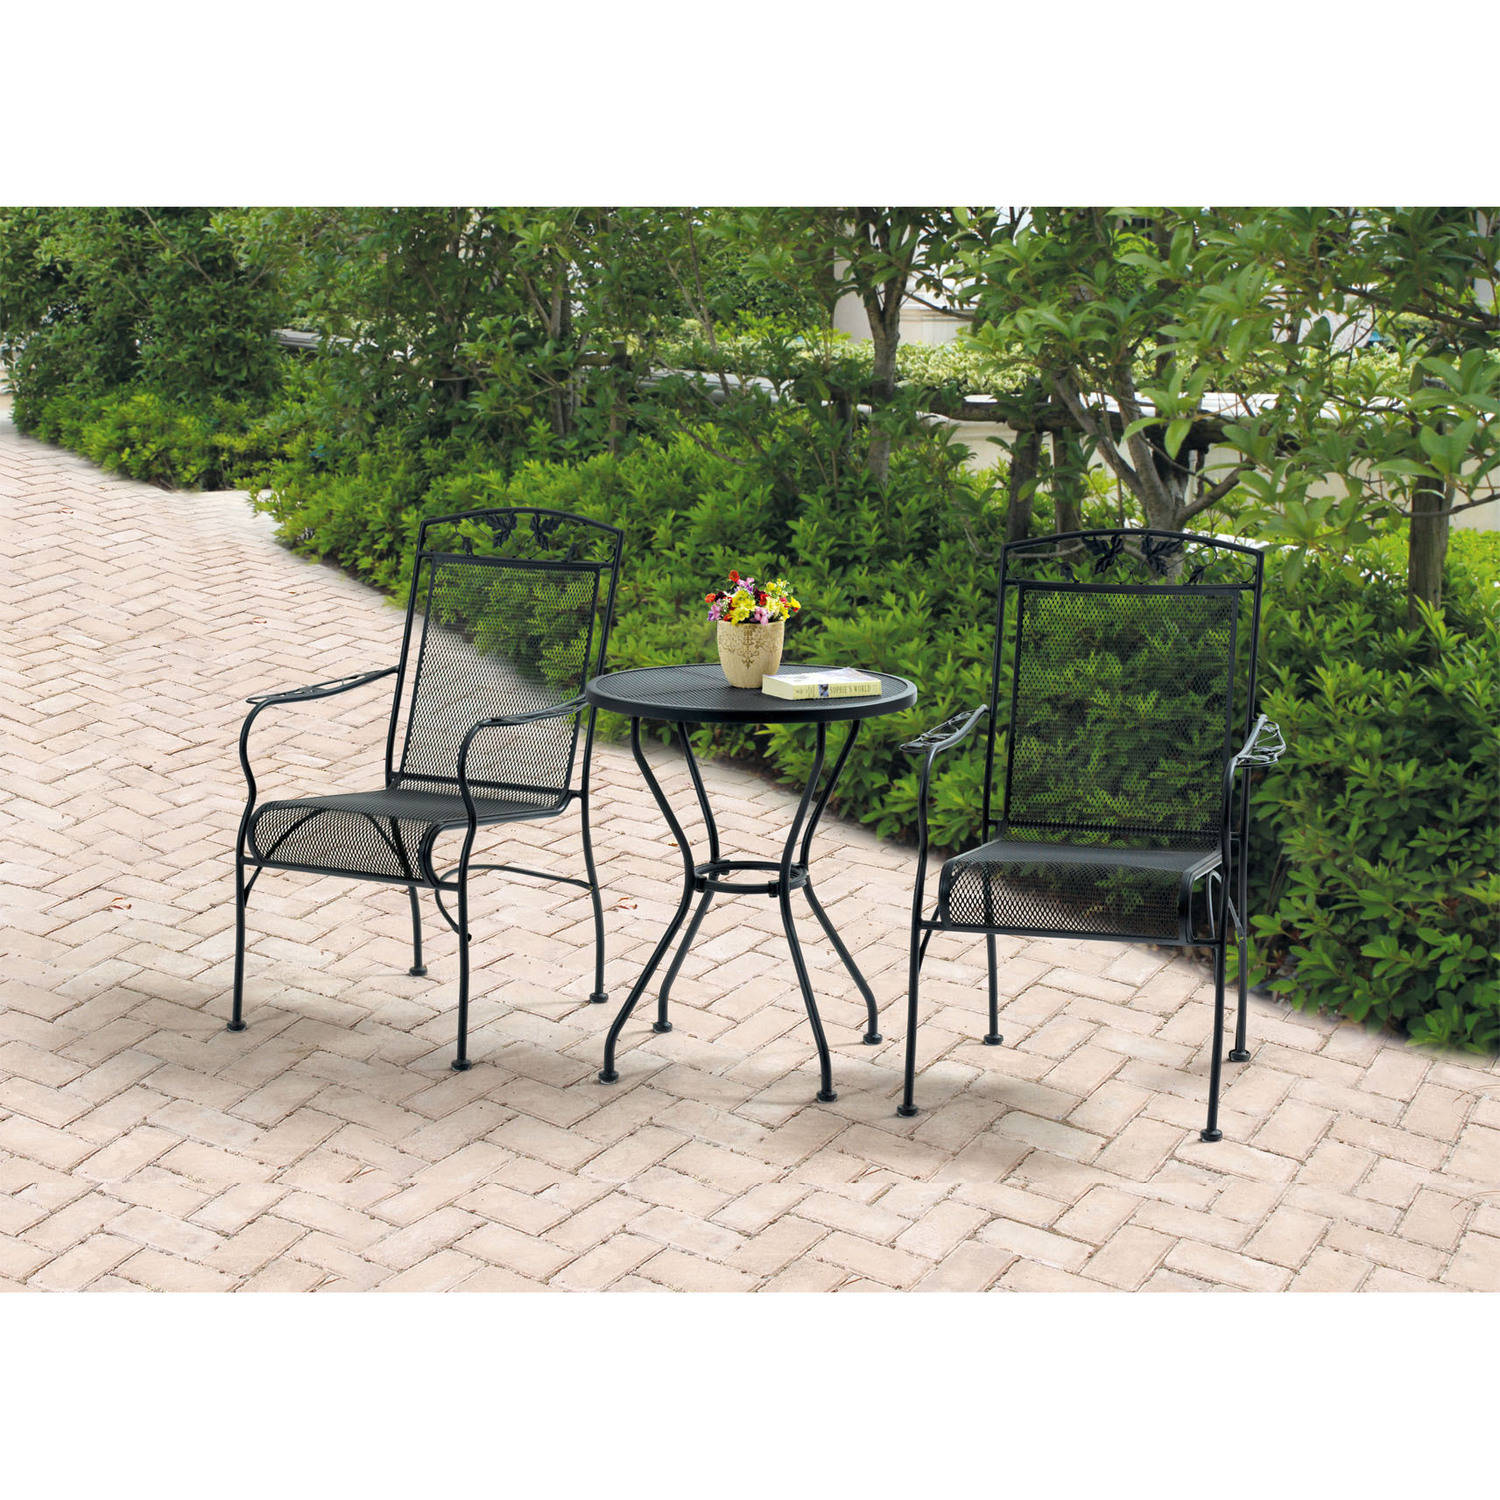 sets z s env corliving larger tpp terrace outdoor park view piece lowe set dining canada patio